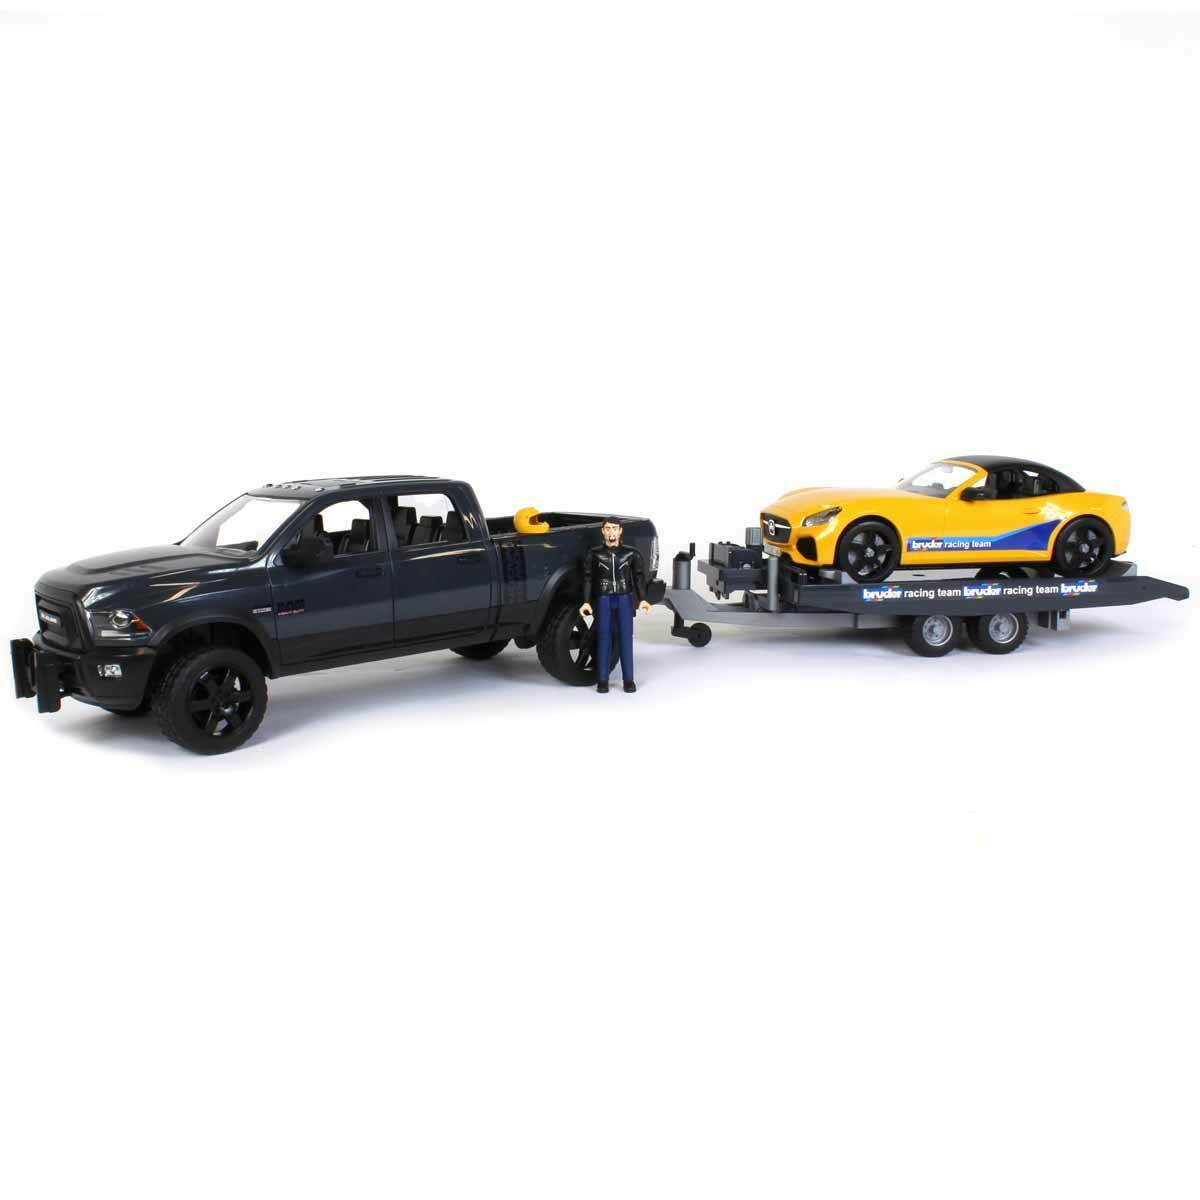 1 16 Rapid attaque Moto 2500 Power Wagon  & Roadster Bruder racing team by Bruder 02504  mode